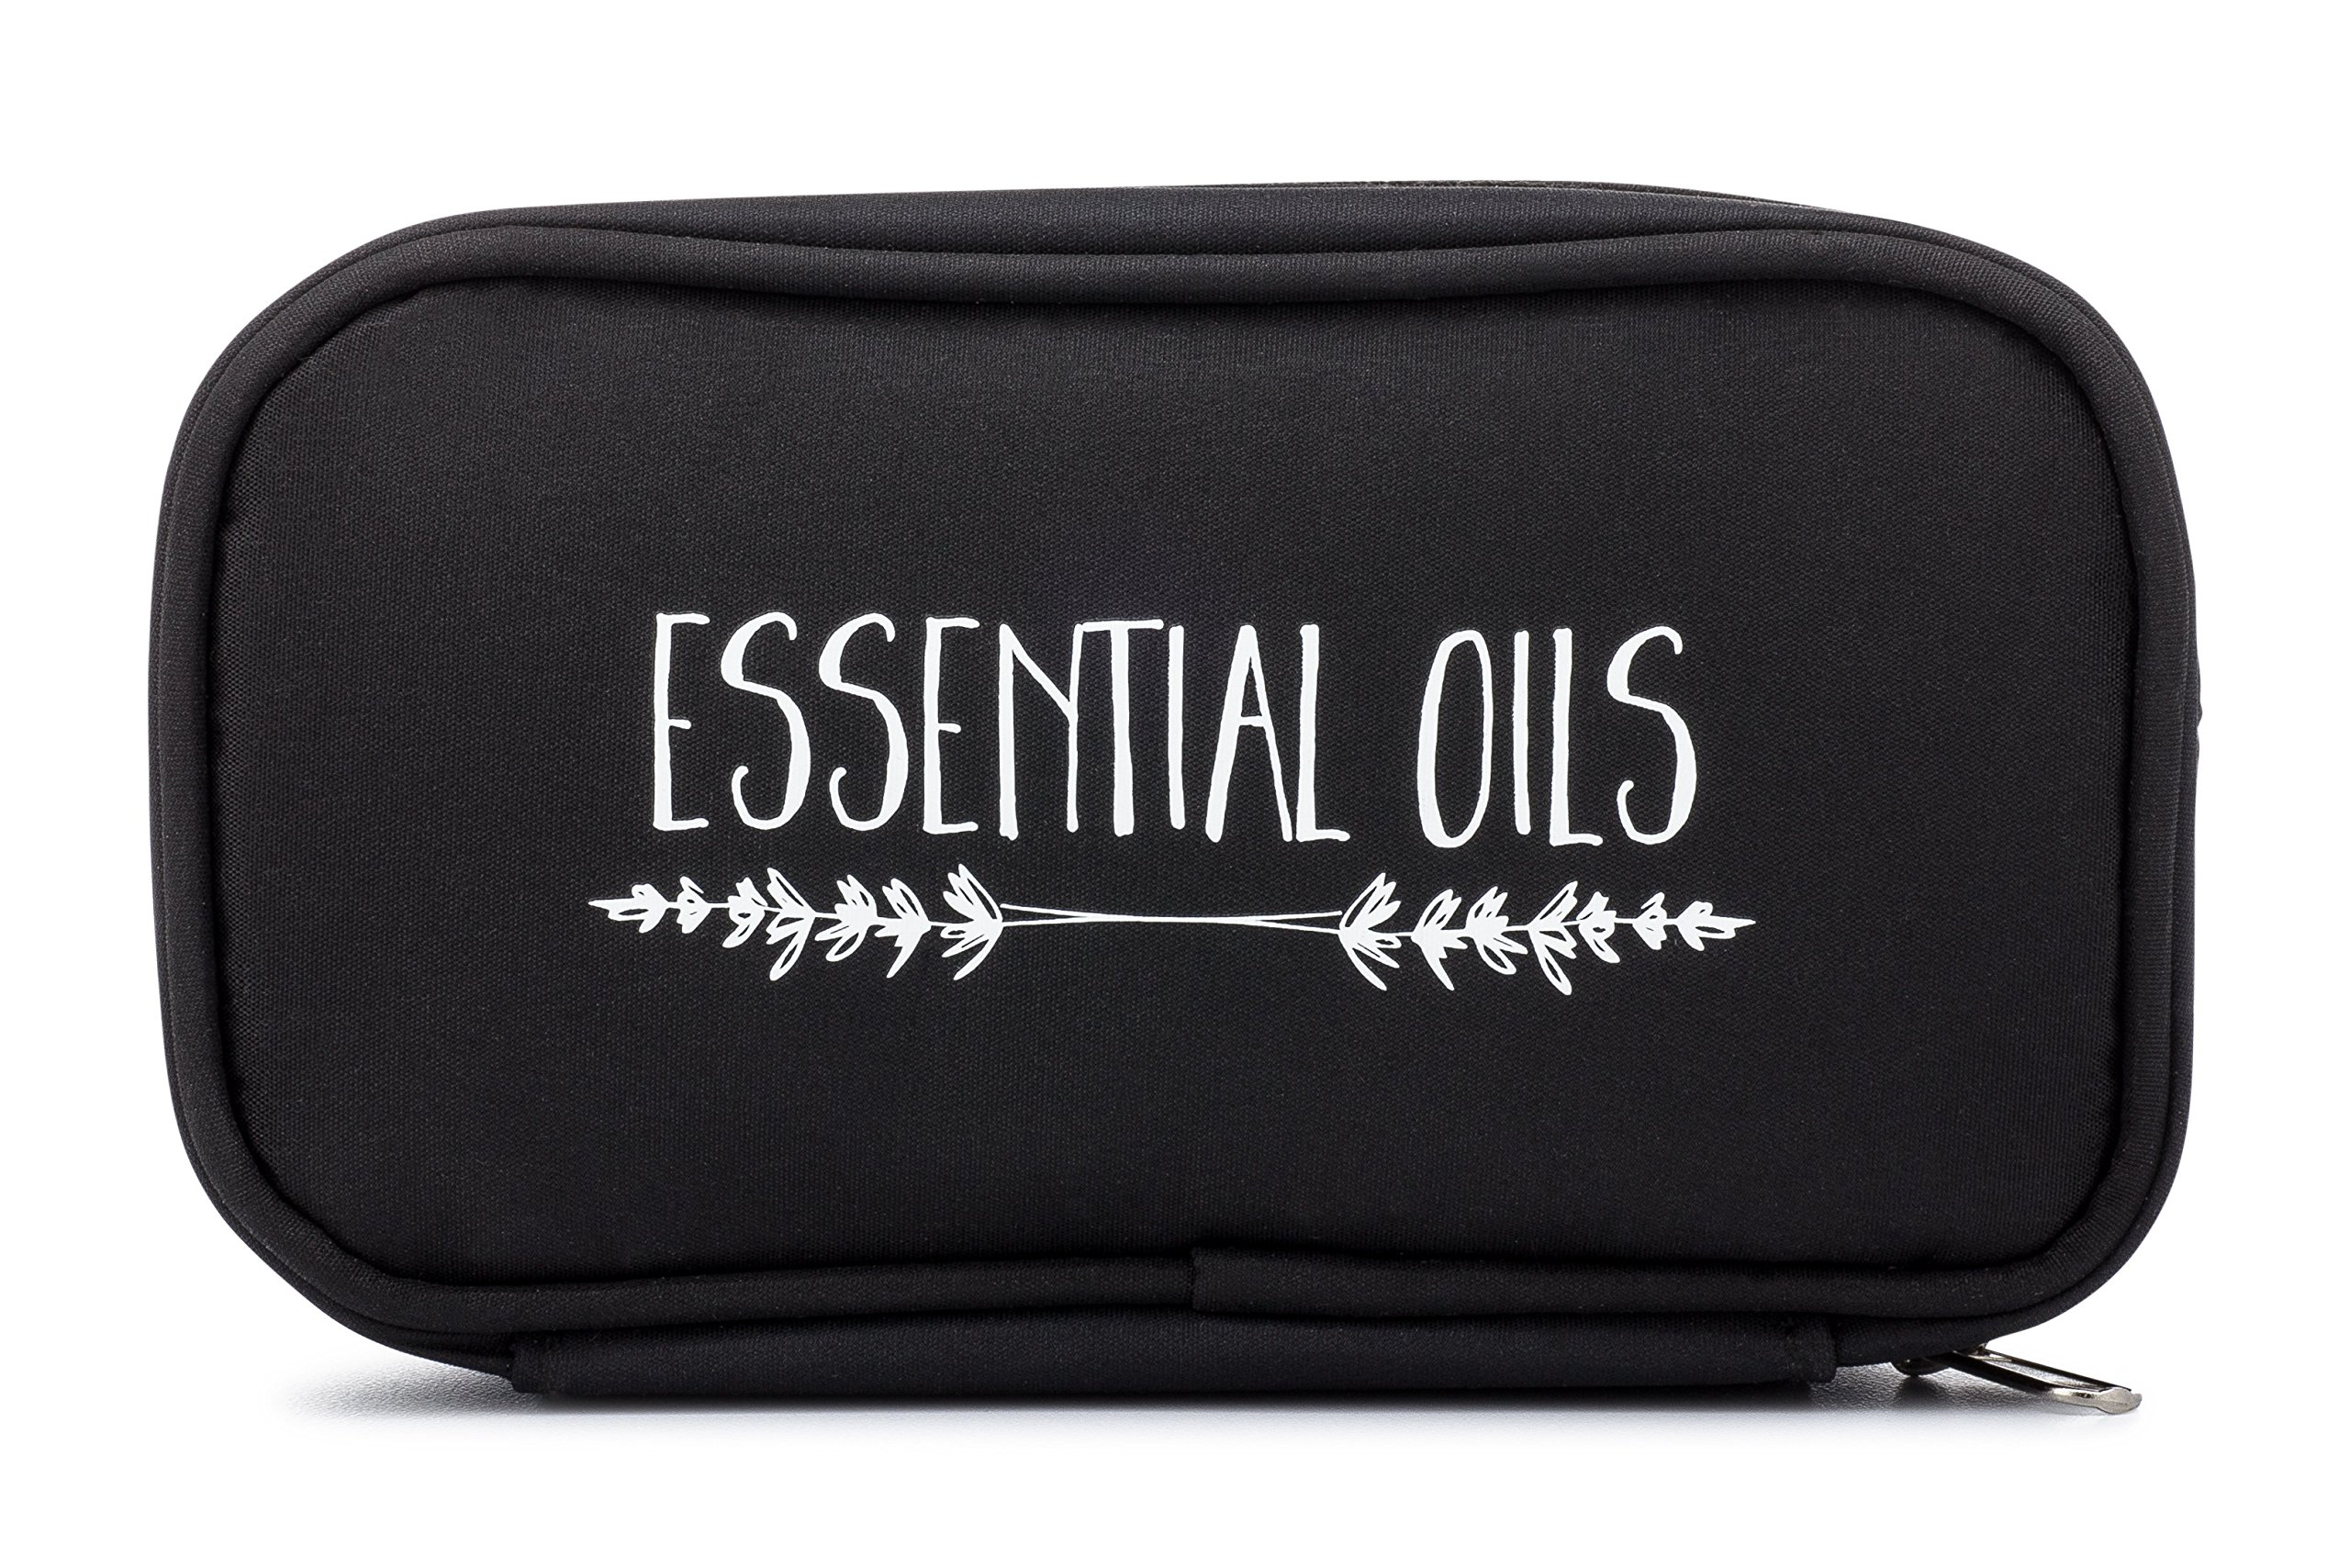 Essential Oil Carrying Case - Black ''Lavender Branches'' - Fits TEN 15ml Bottles - (Can hold 10ml & 5ml bottles as well) Young Living, doTERRA Travel Bag